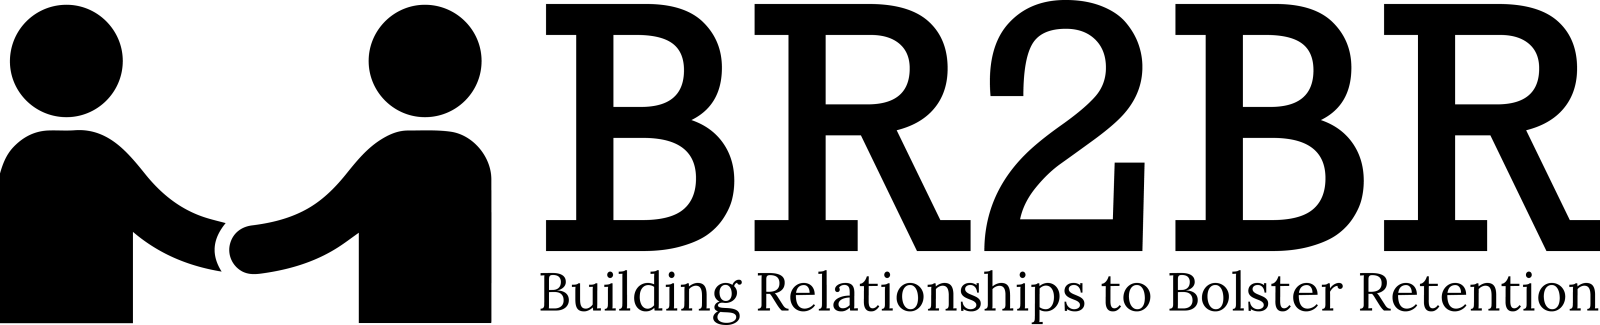 Building Relationships to Bolster Retention Logo